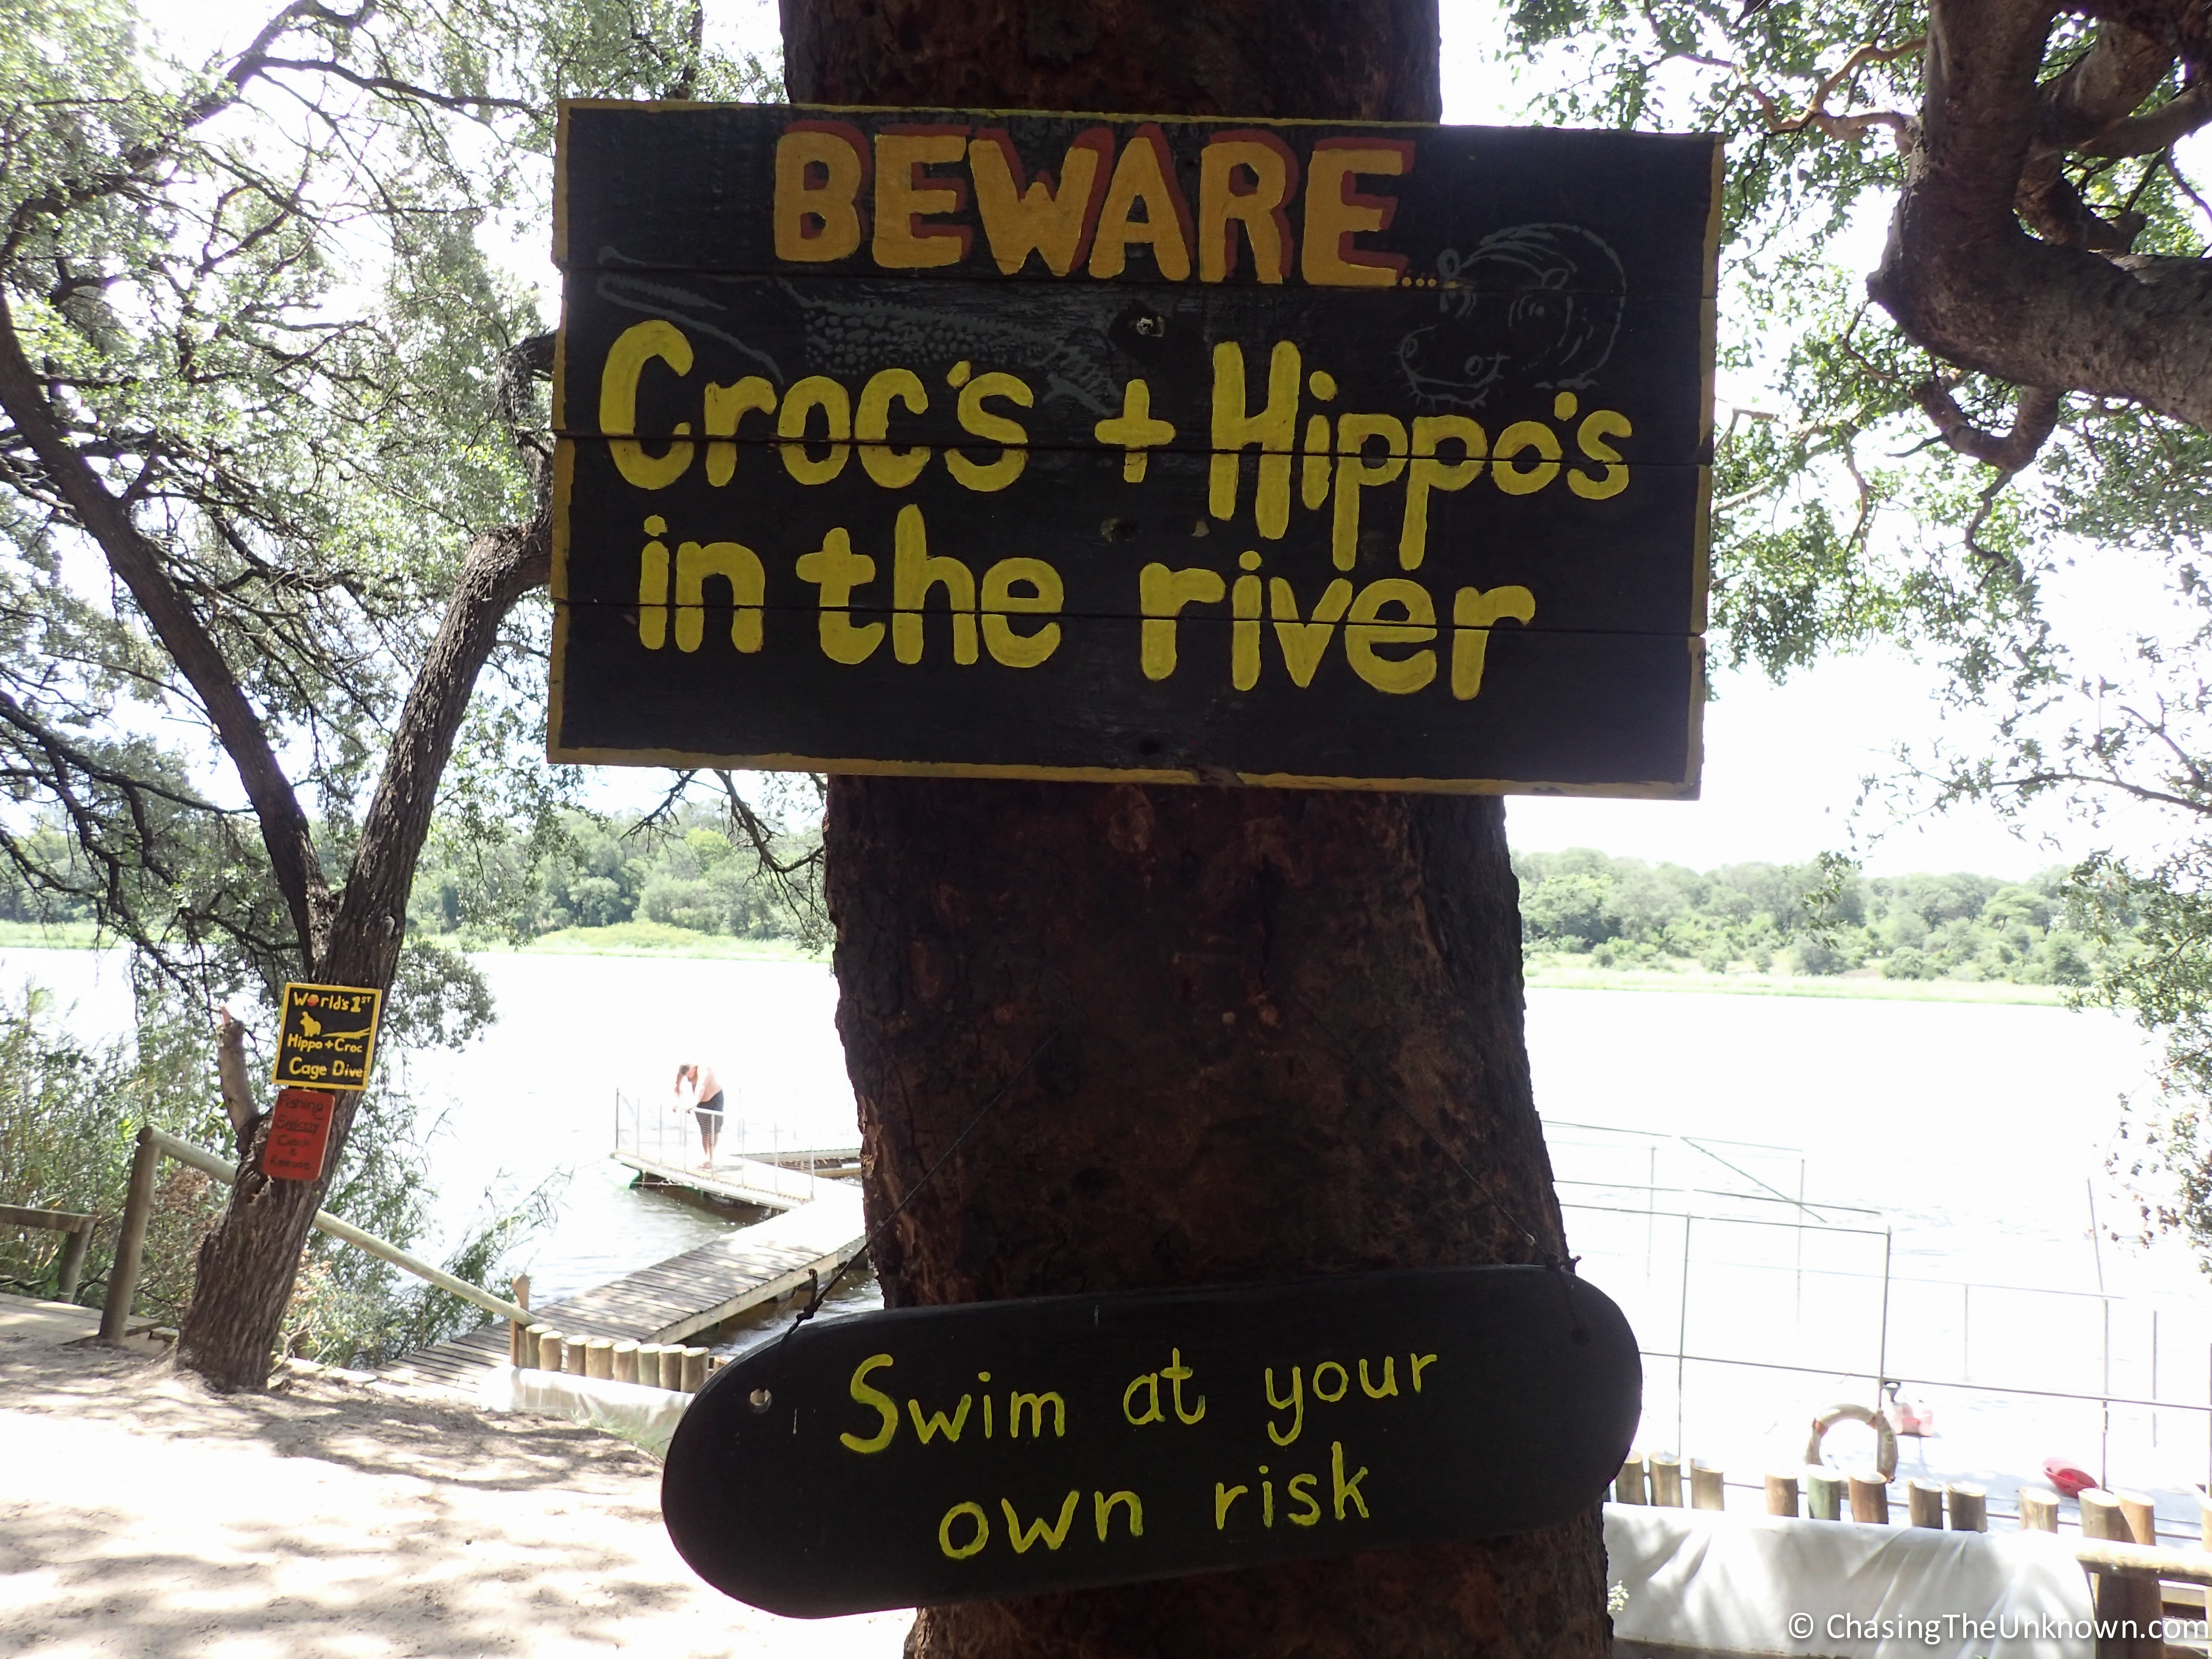 Not a joke - hippos serenaded me nightly while staying on the banks of the Okavango River.